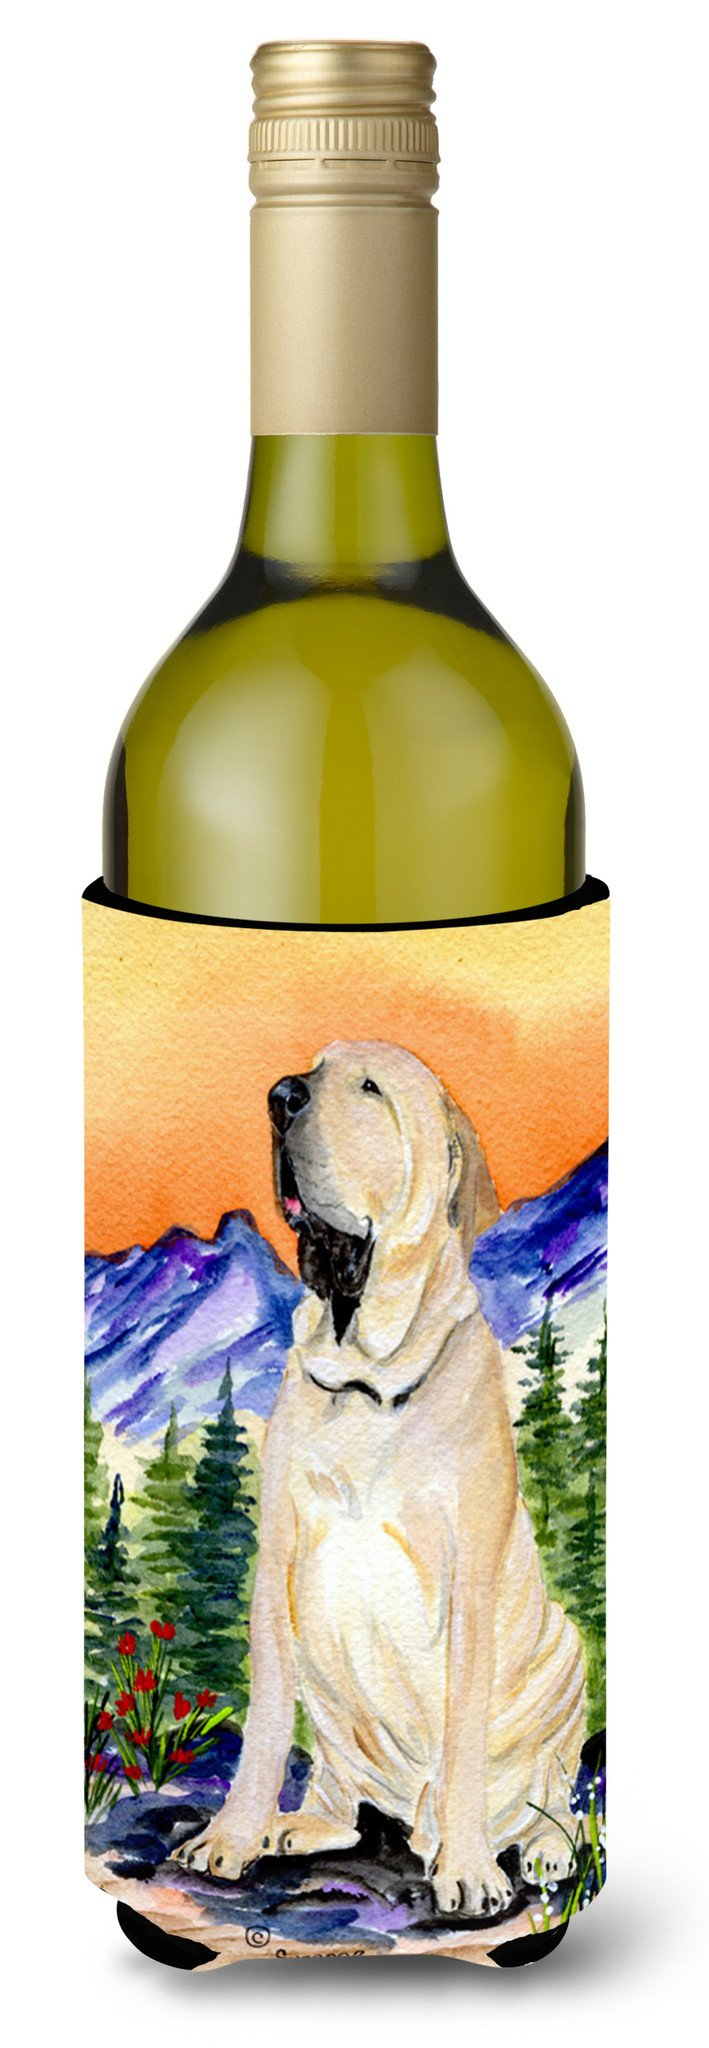 Brazilian Mastiff  / Fila Brasileiro Wine Bottle Beverage Insulator Beverage Insulator Hugger by Caroline's Treasures